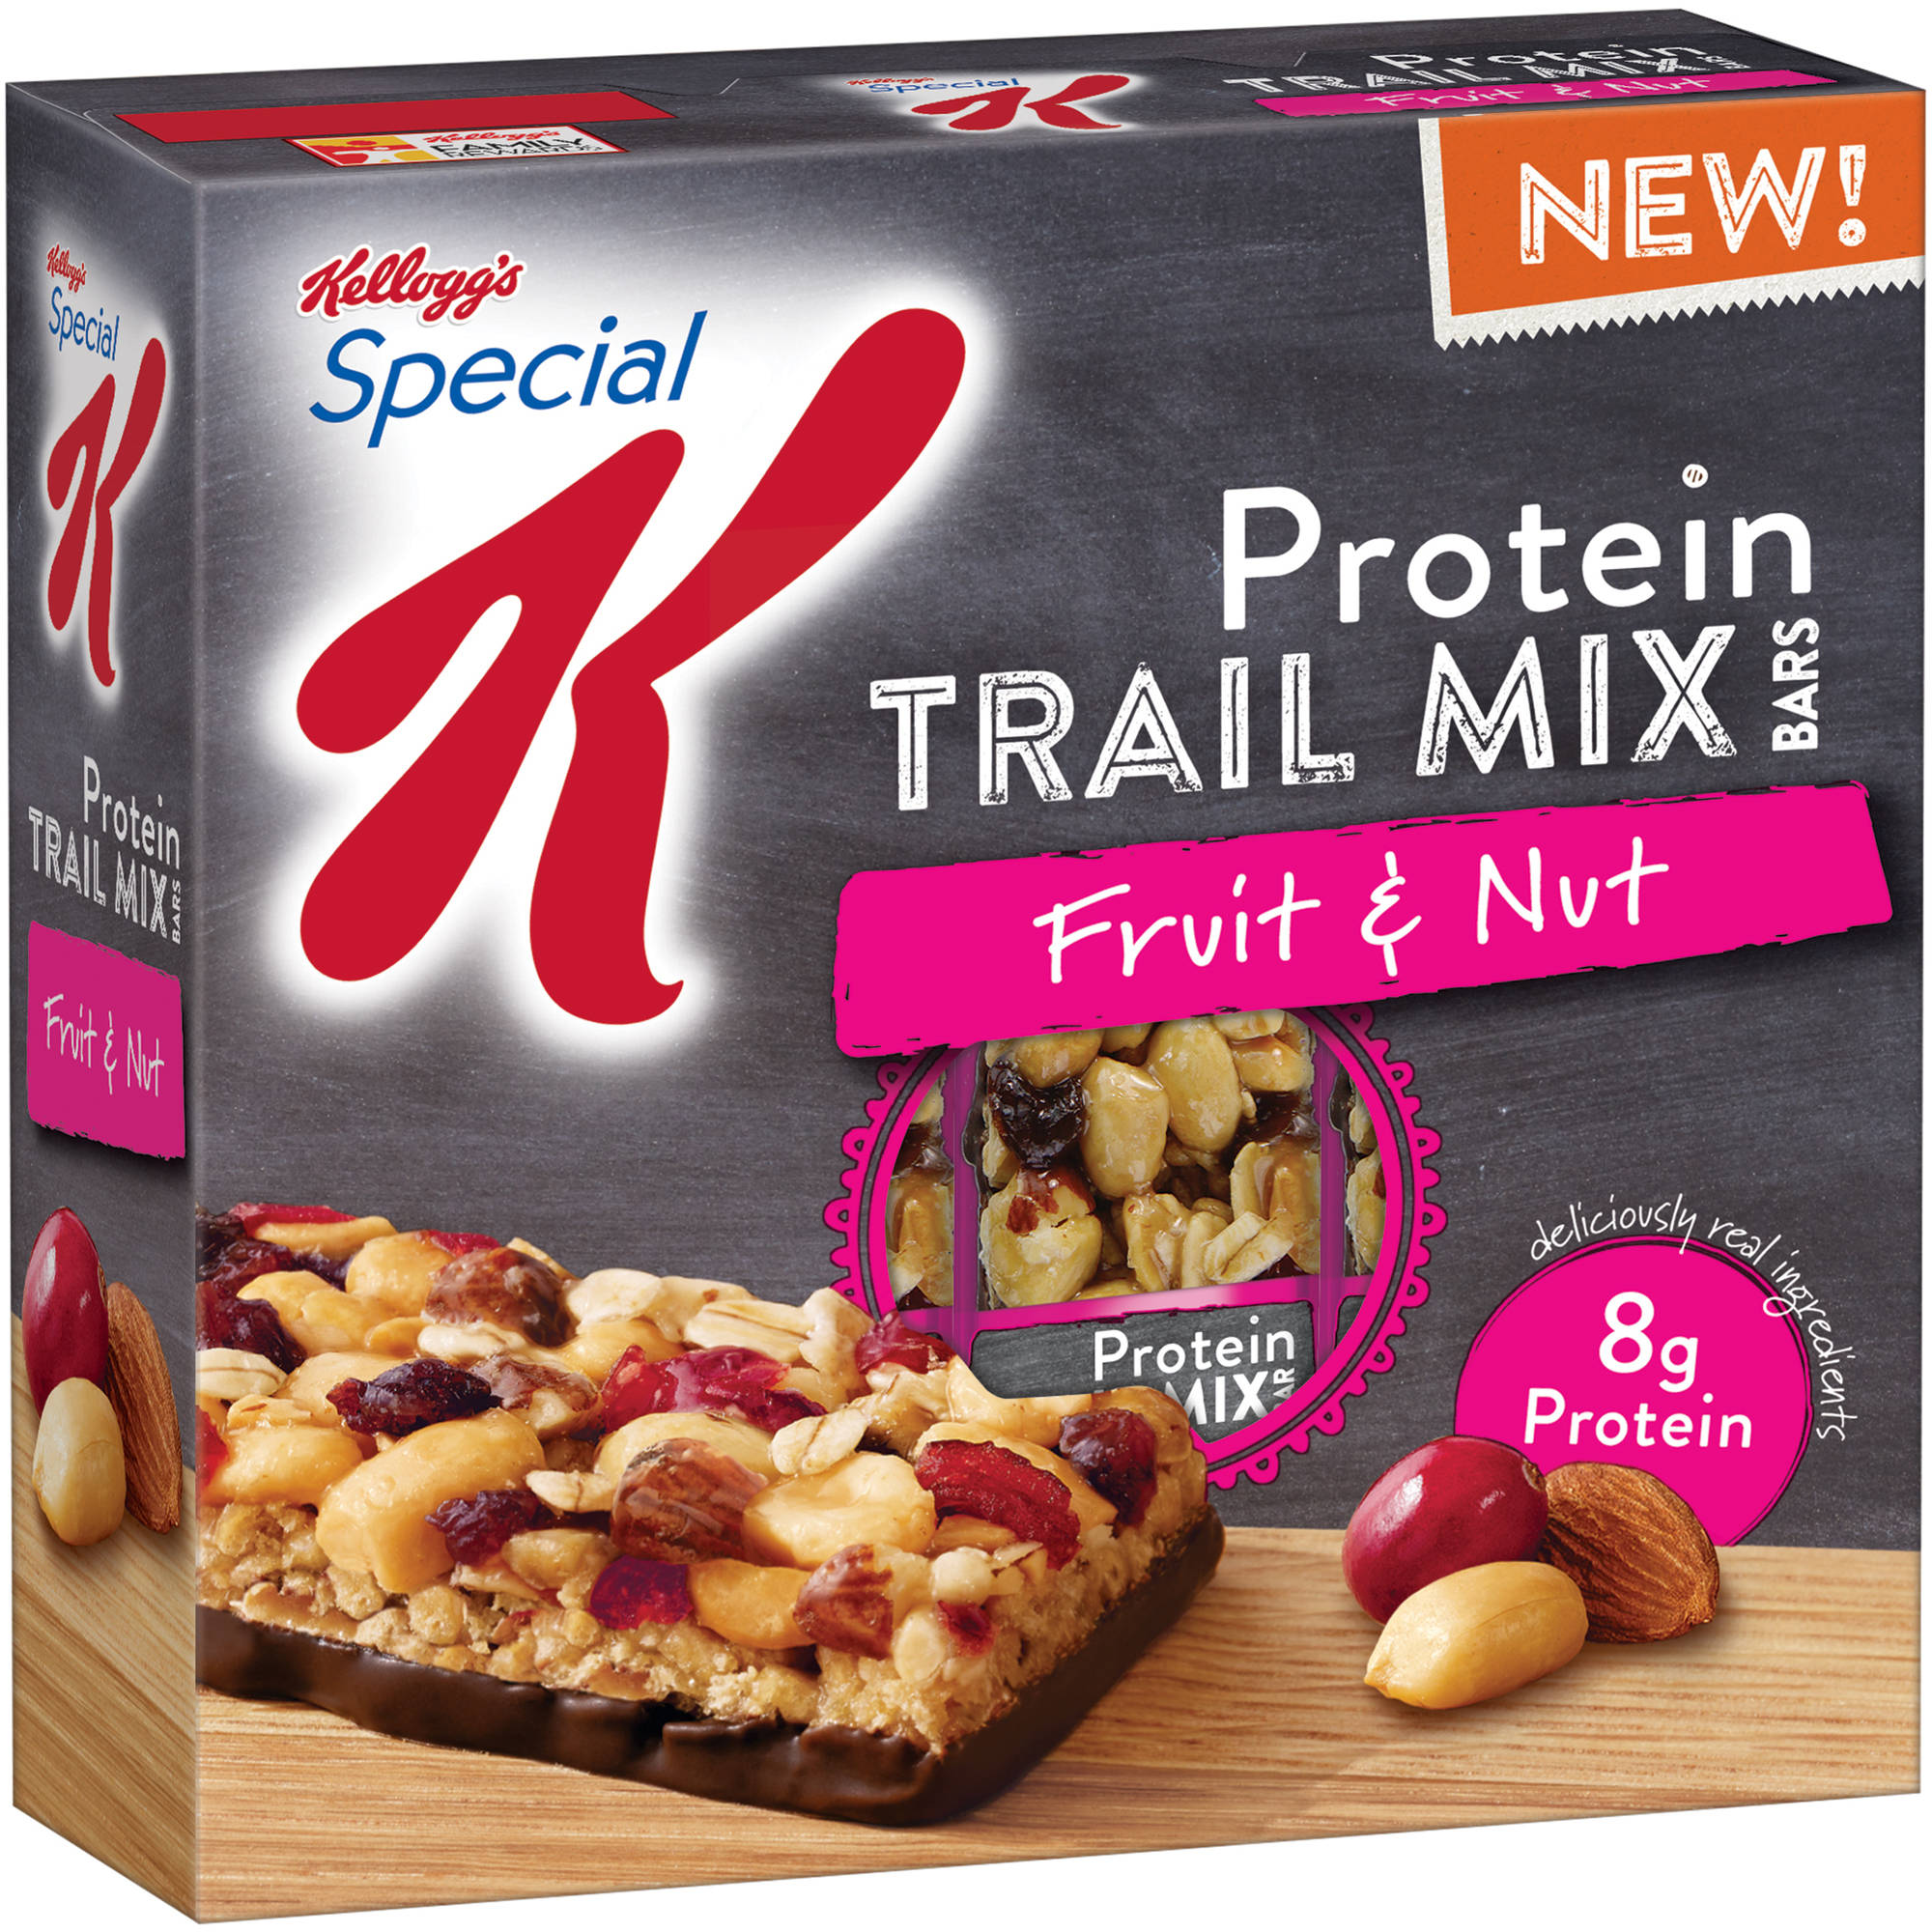 Kellogg's Special K Protein Fruit & Nut Trail Mix Bars, 1.23 oz, 5 ct